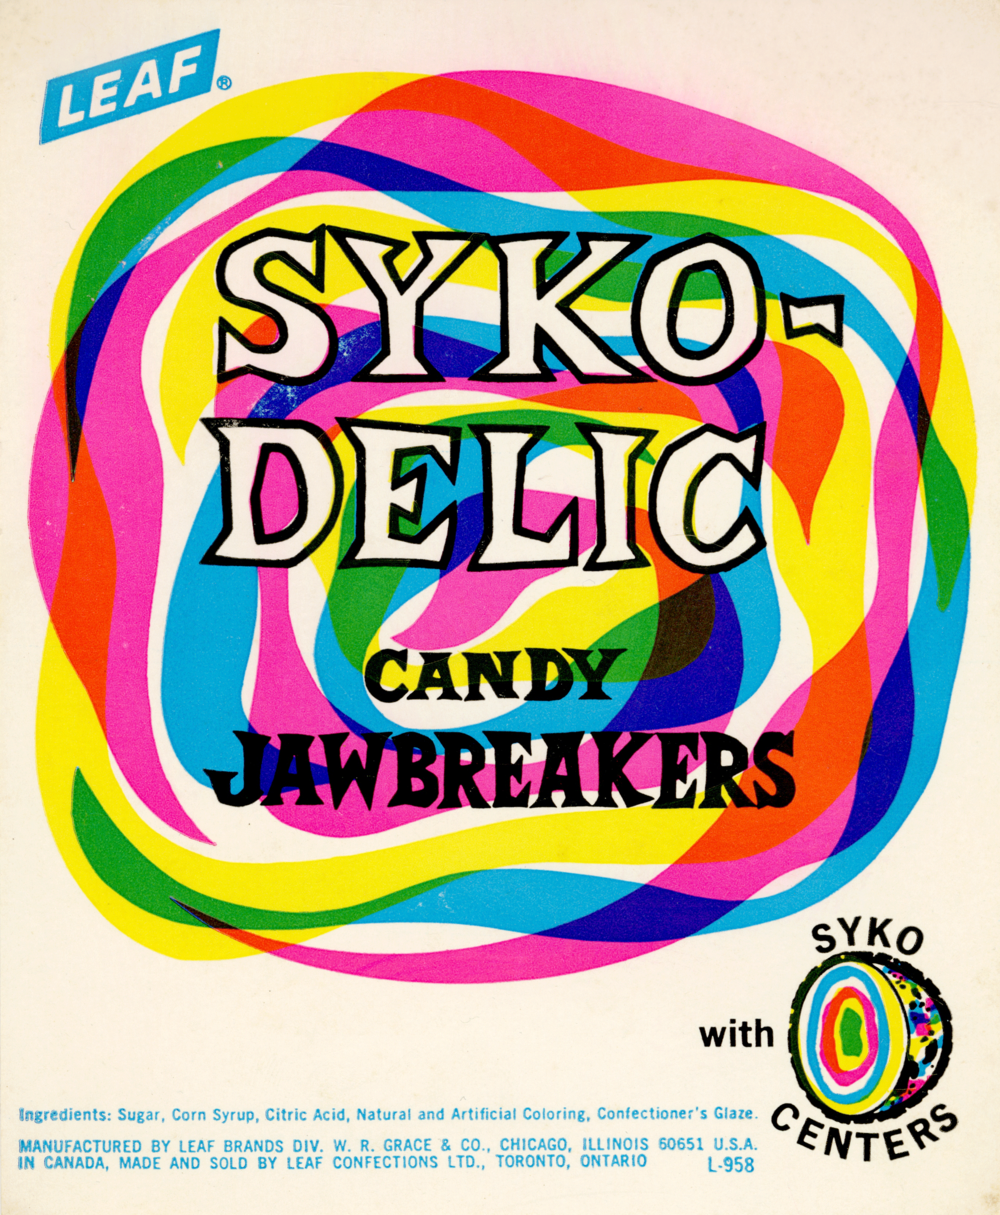 syko-delic_24088177658_o.png